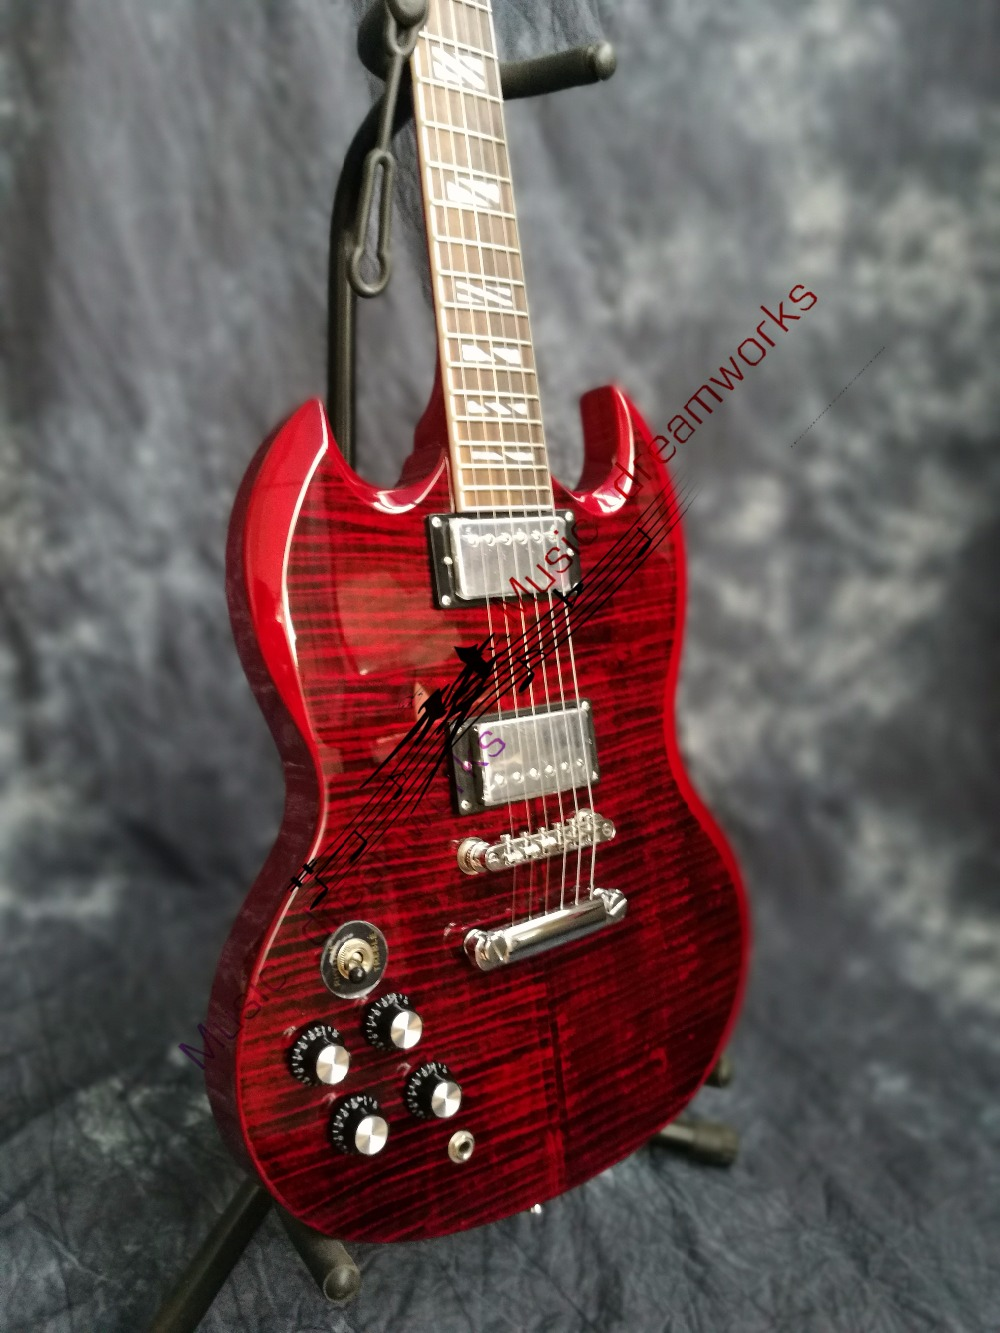 China OEM  firehawk  SG electric guitar The left hand guitar,RED guitar.You can change the color EMS free shipping china oem firehawk shop guitar hot selling tl electric guitar stained maple tiger stripes maple wood color page 1